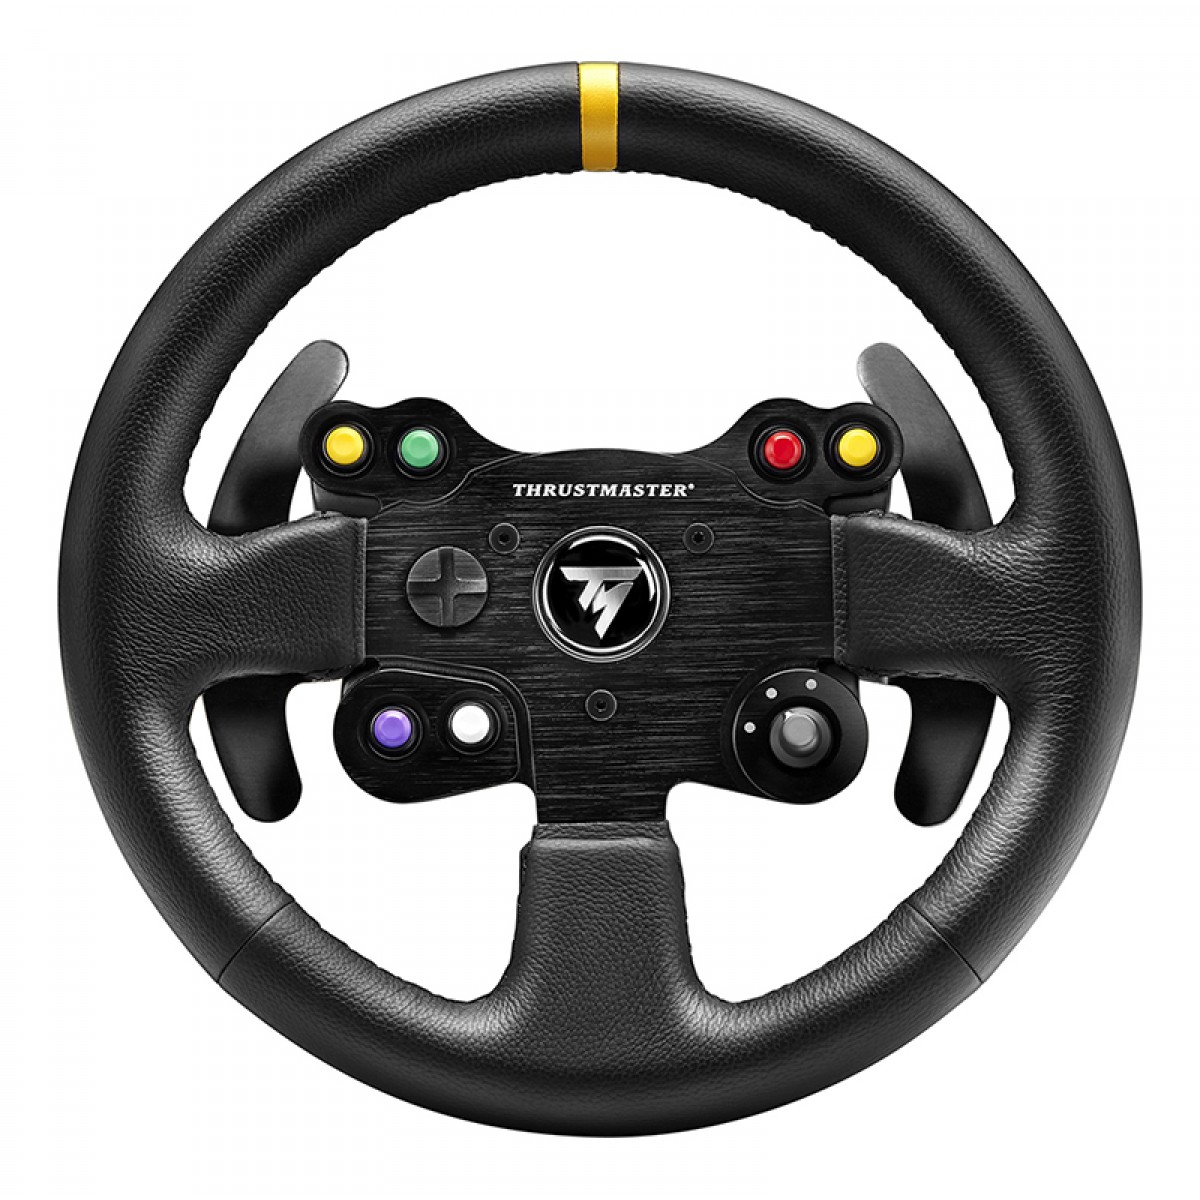 Thrustmaster Leather 28 GT Wheel Add-On - pour T500, T300 et TX wheel  (PC, PS3, PS4, Xbox One)